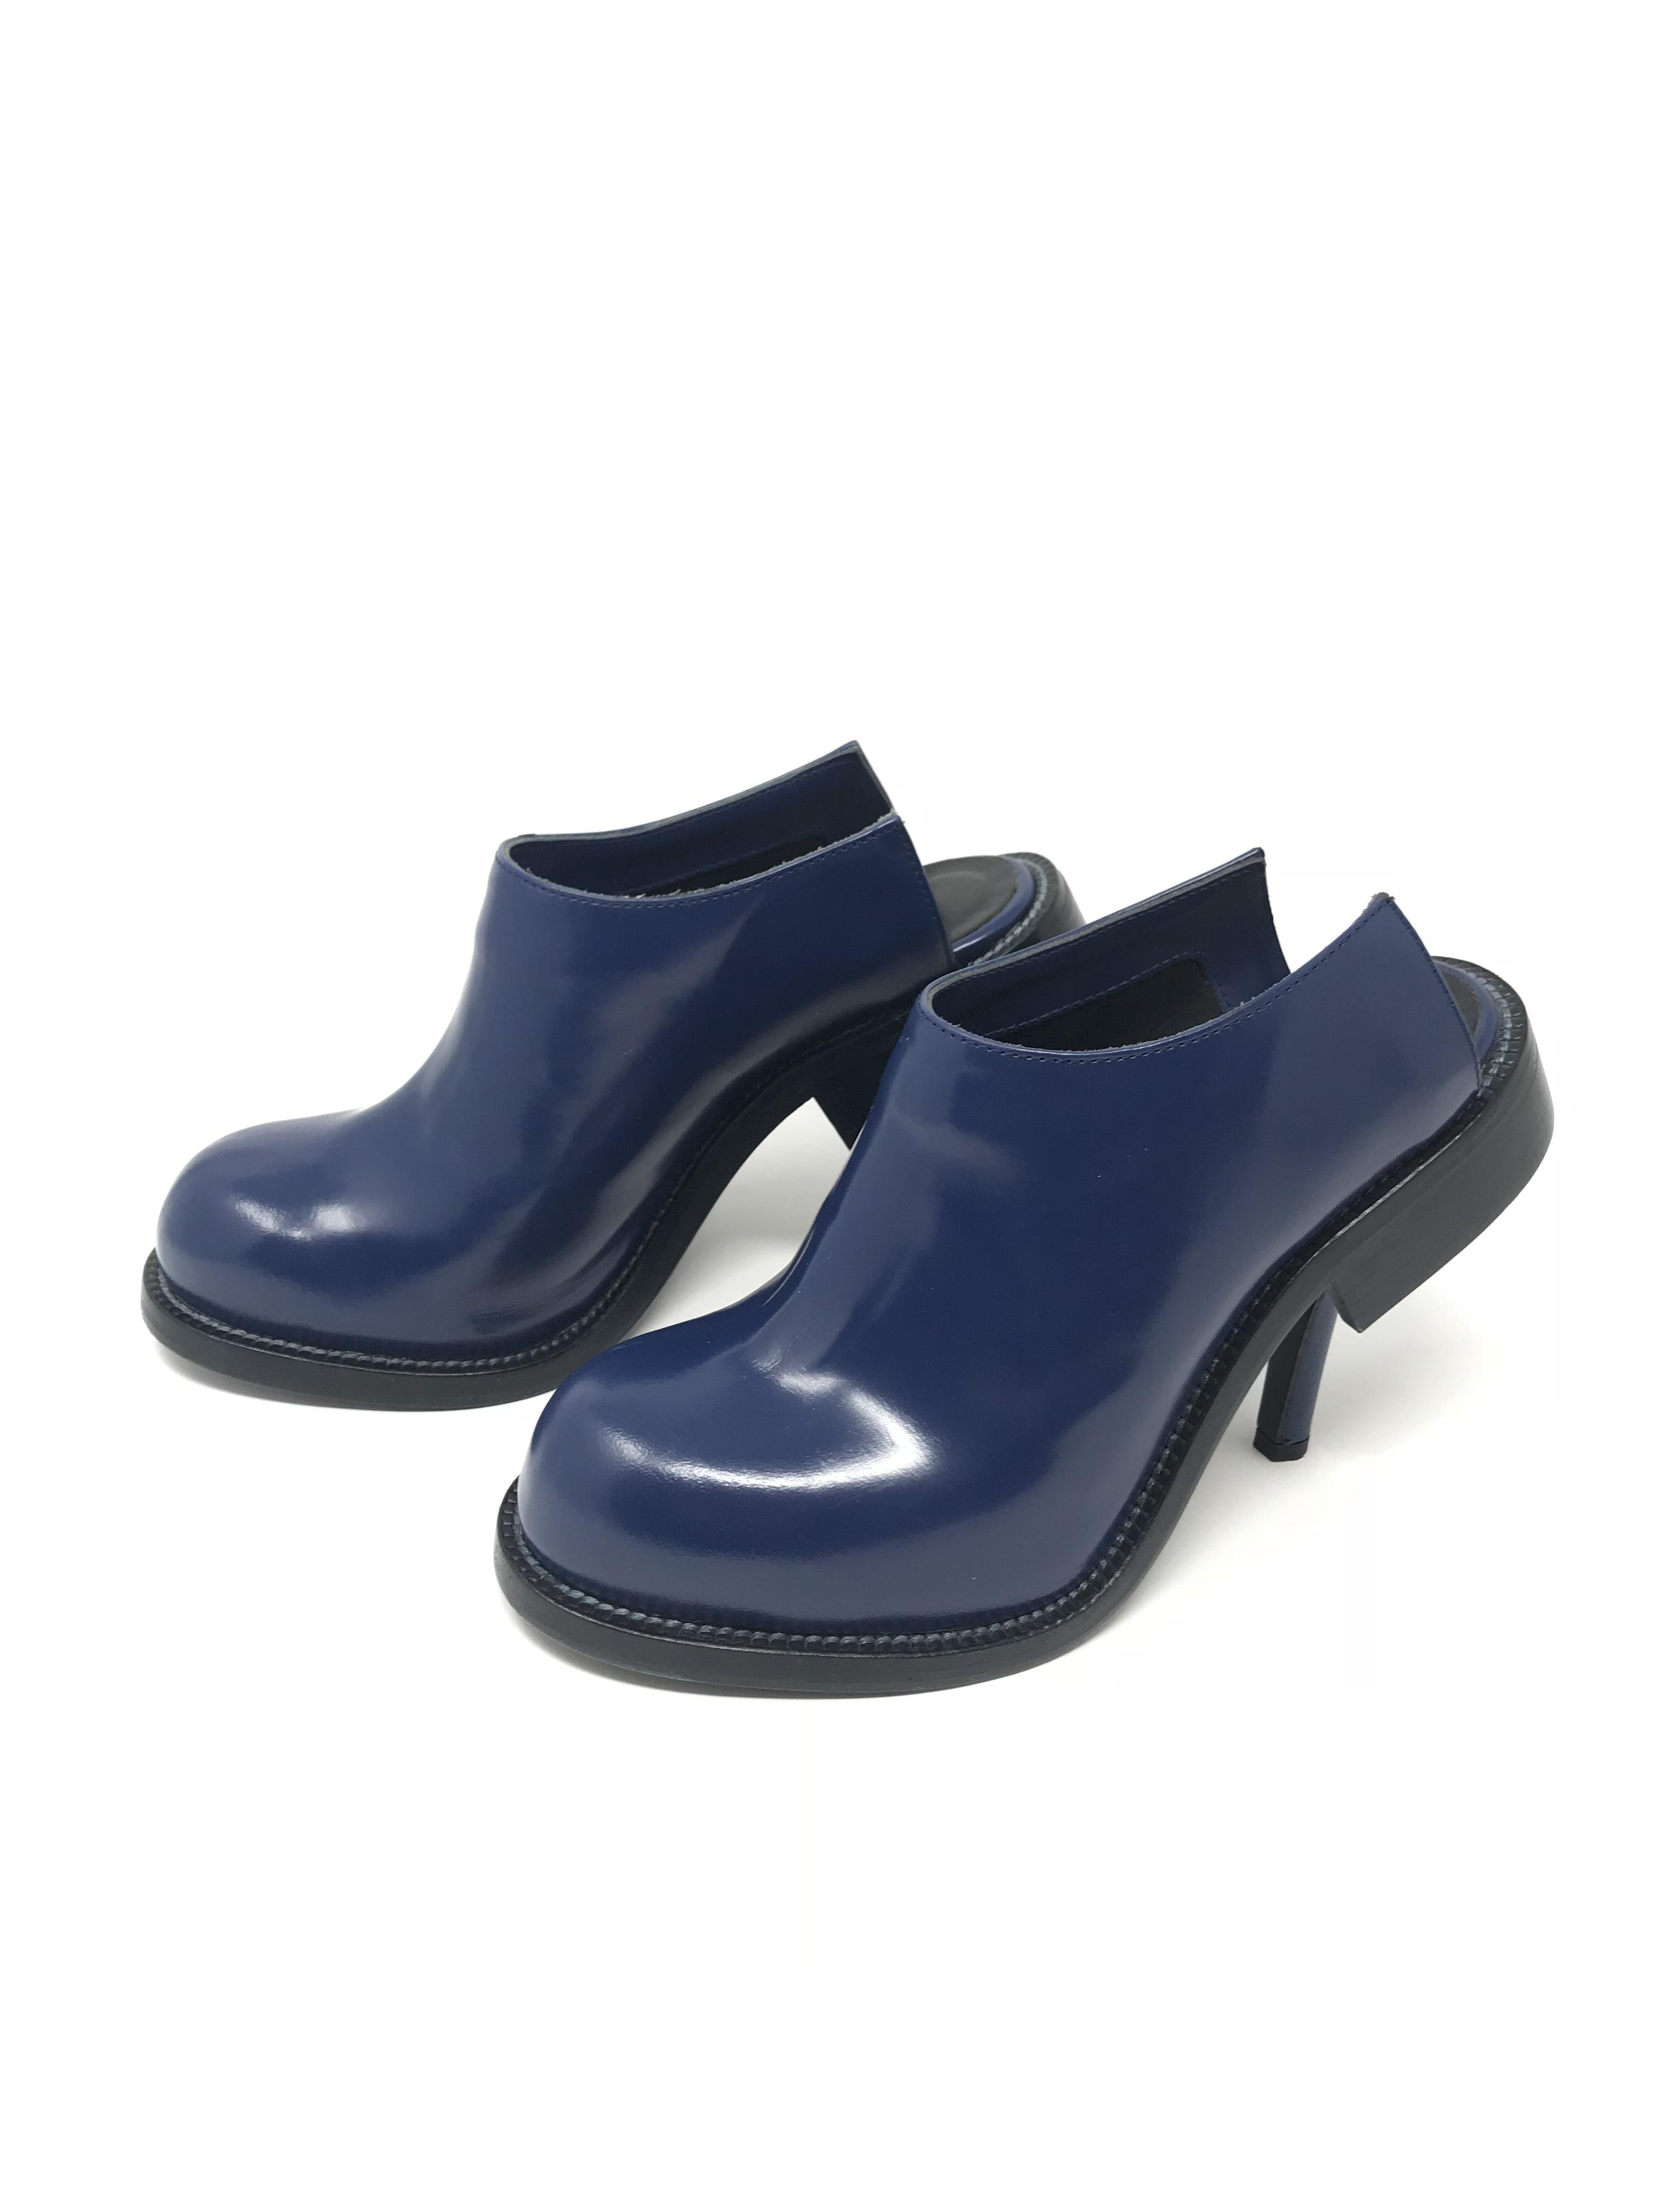 Acne Shoes Price: $136.99